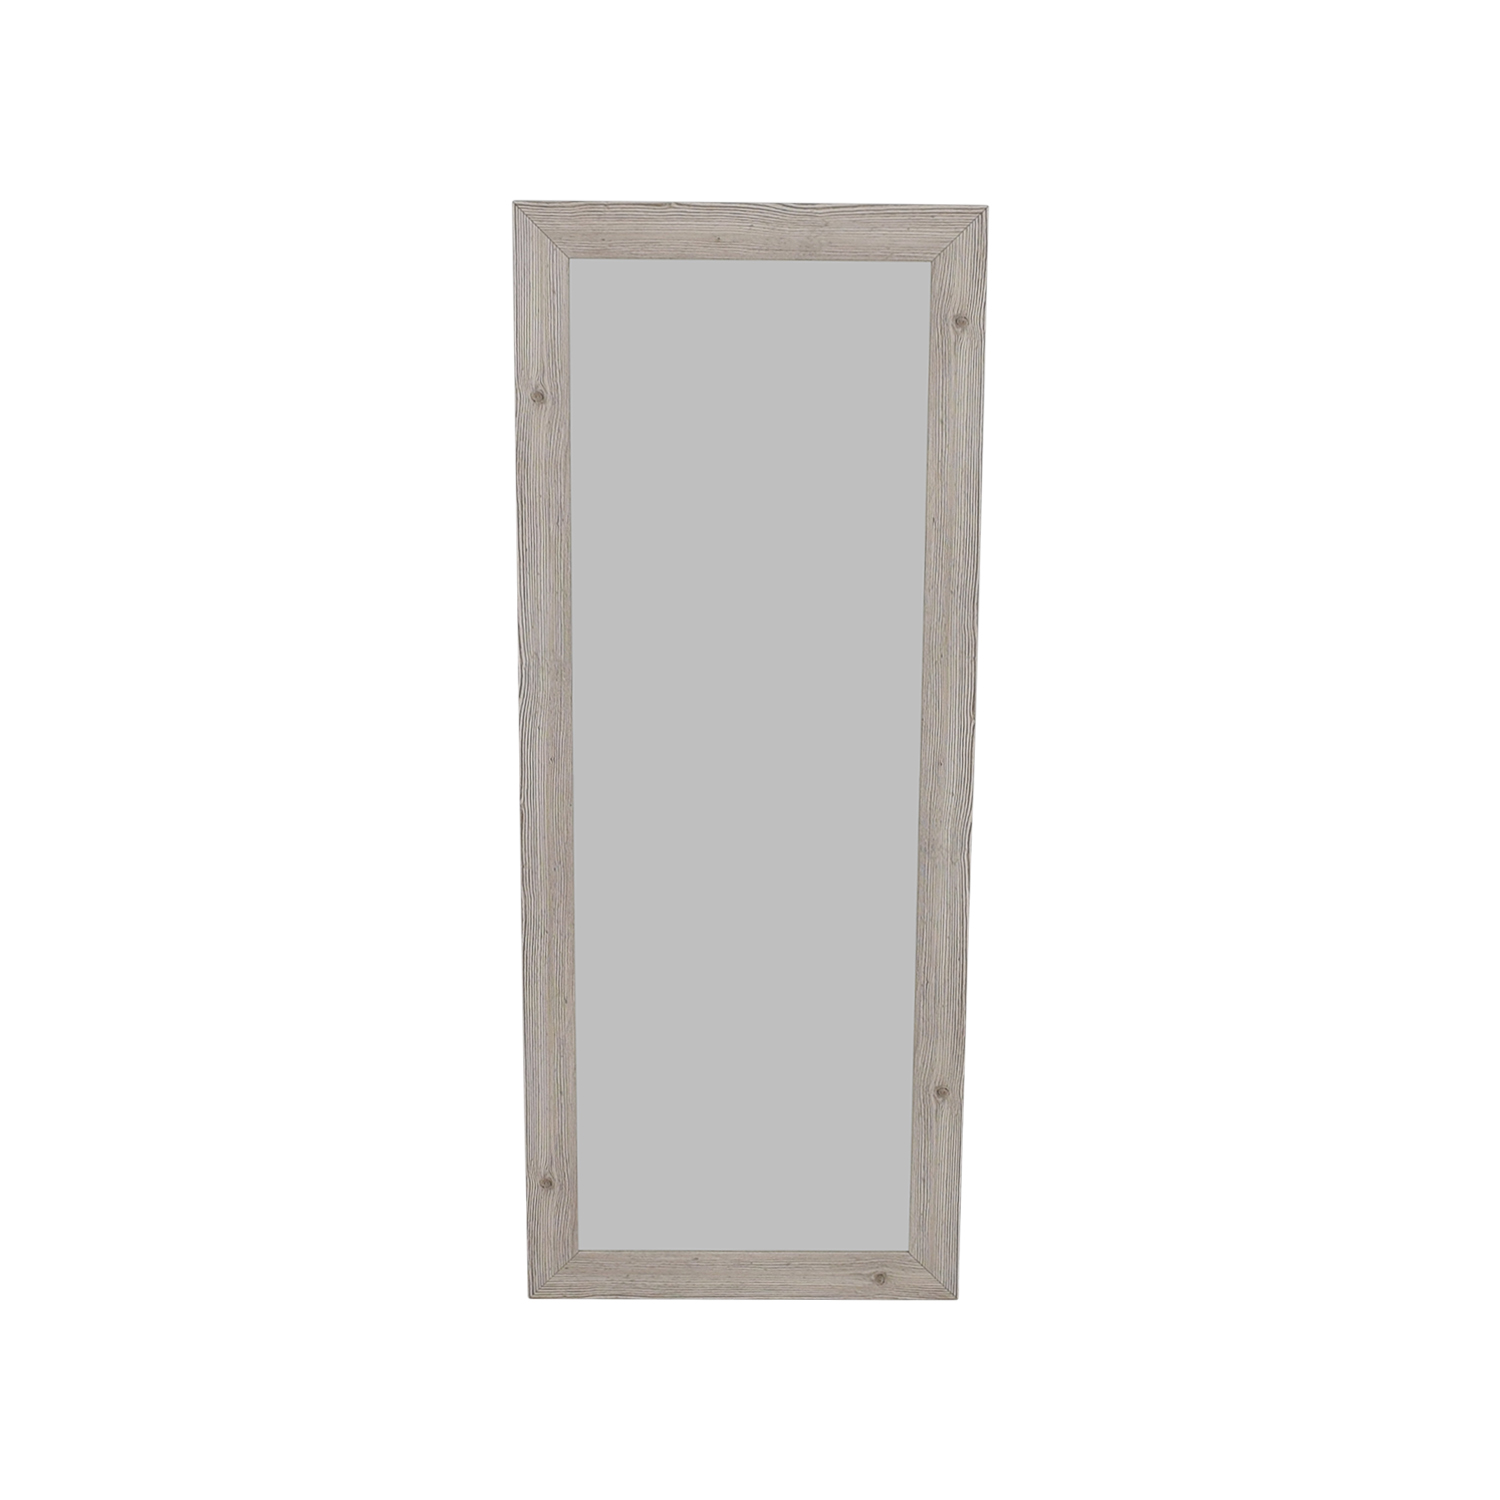 Rayne Mirrors Rayne White Washed Wooden Floor Mirror discount